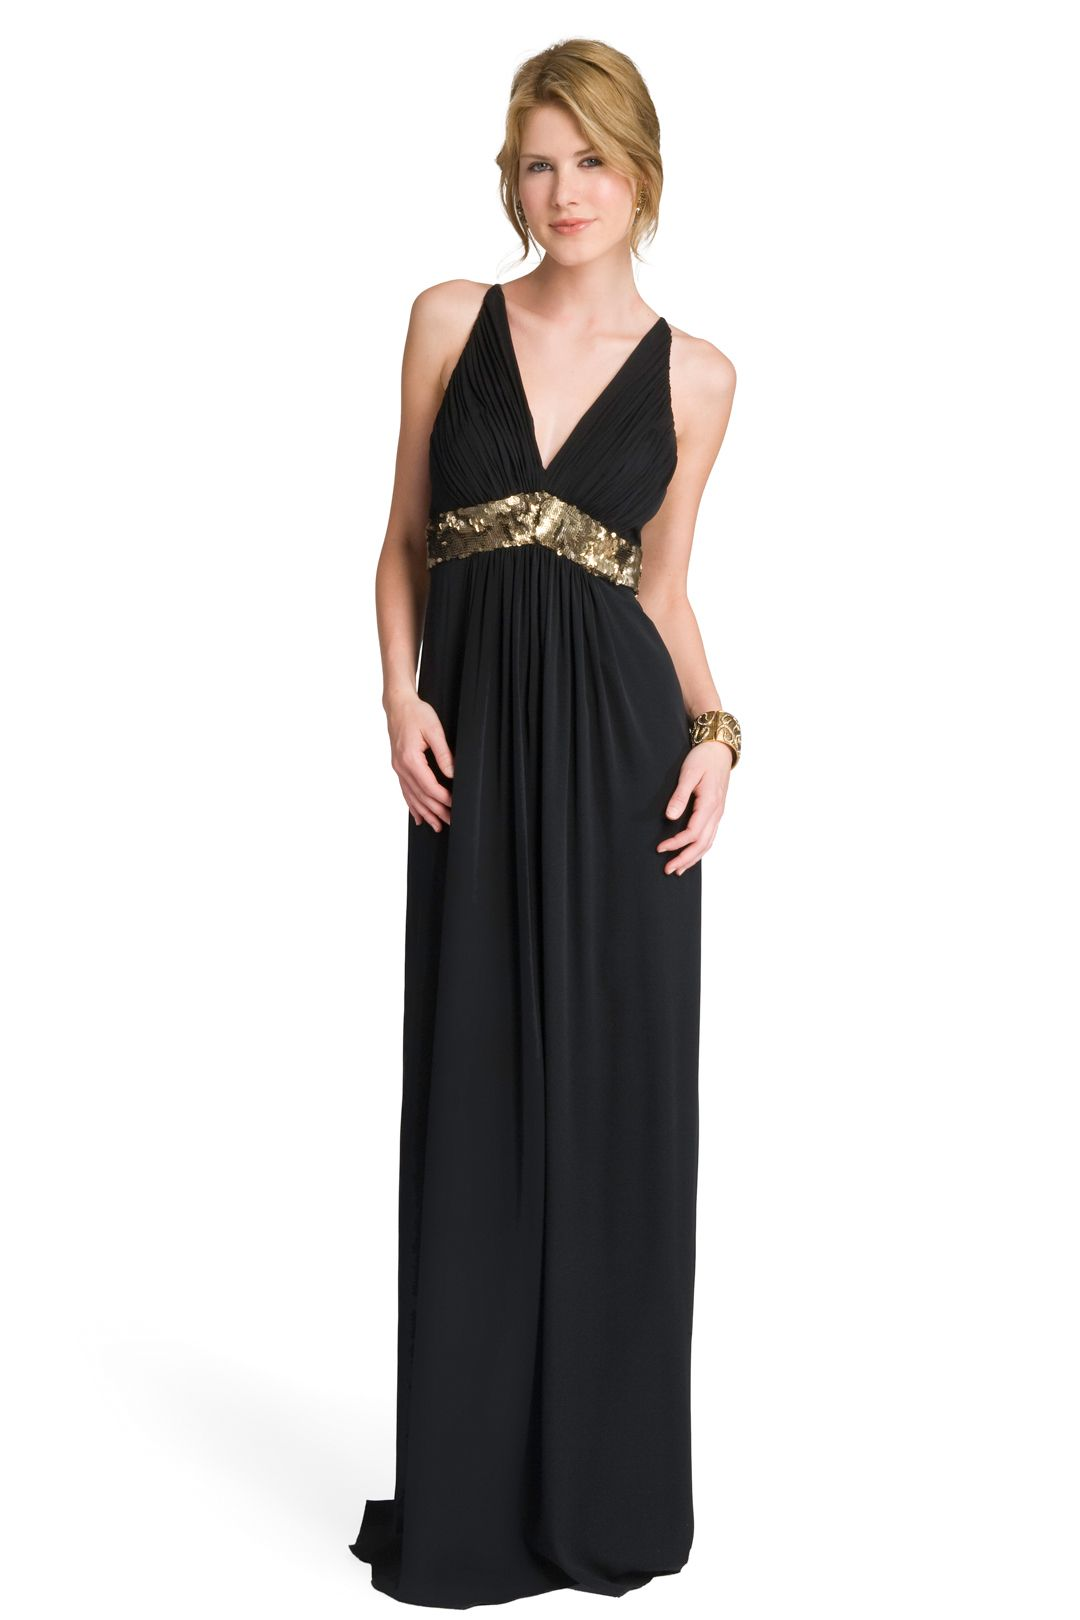 Sequin trim empire gown pinterest empire sequins and gowns